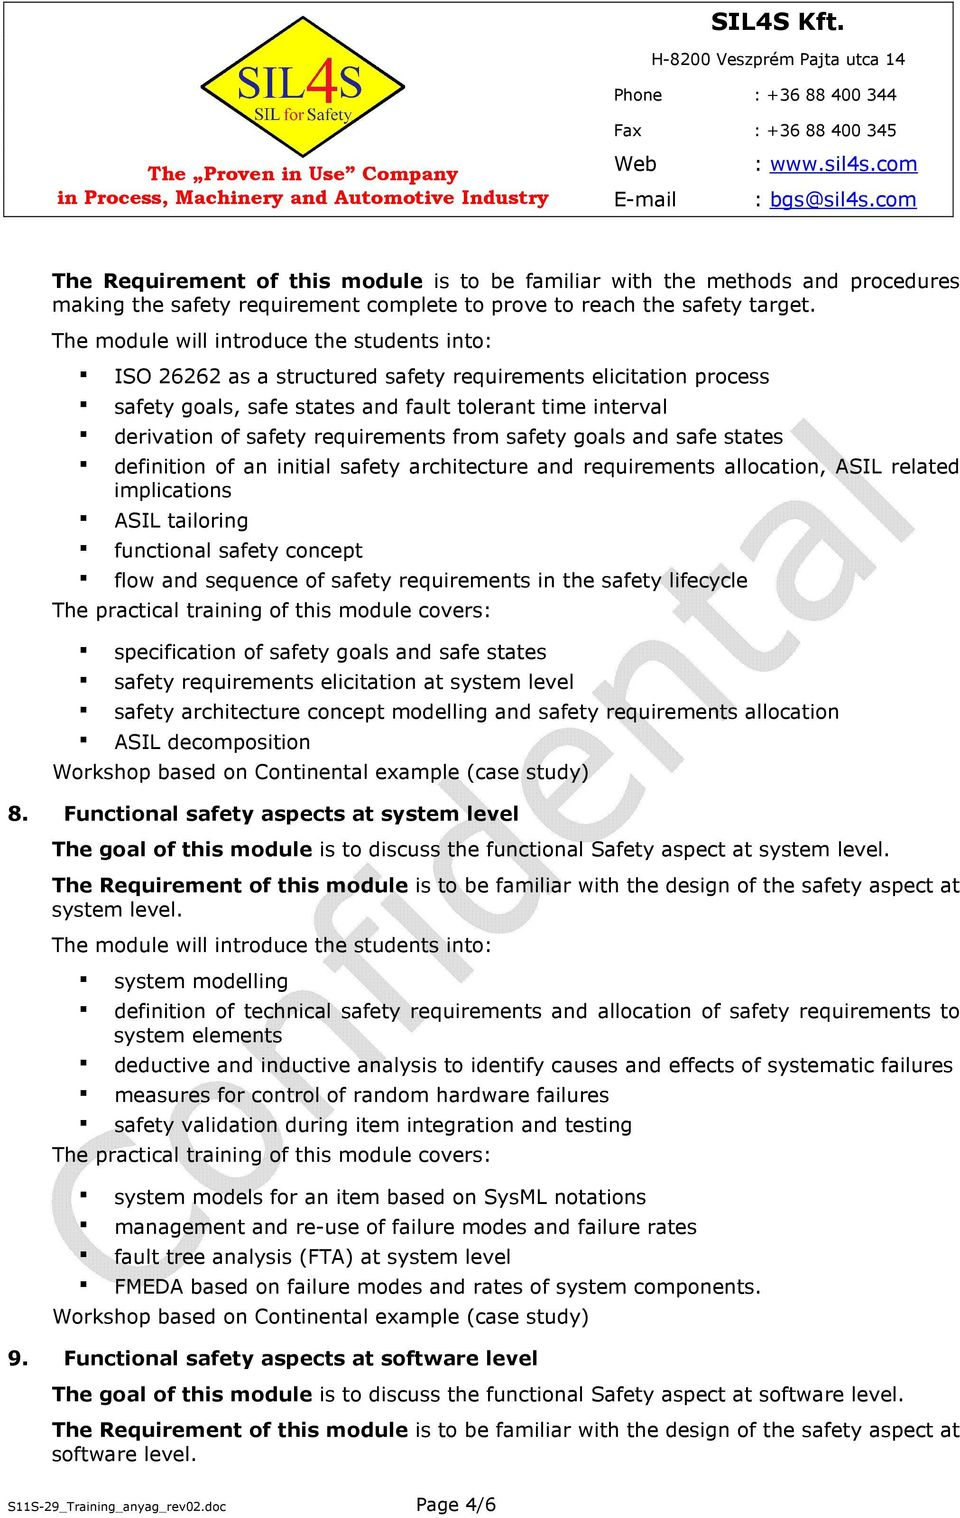 definition of an initial safety architecture and requirements allocation, ASIL related implications ASIL tailoring functional safety concept flow and sequence of safety requirements in the safety